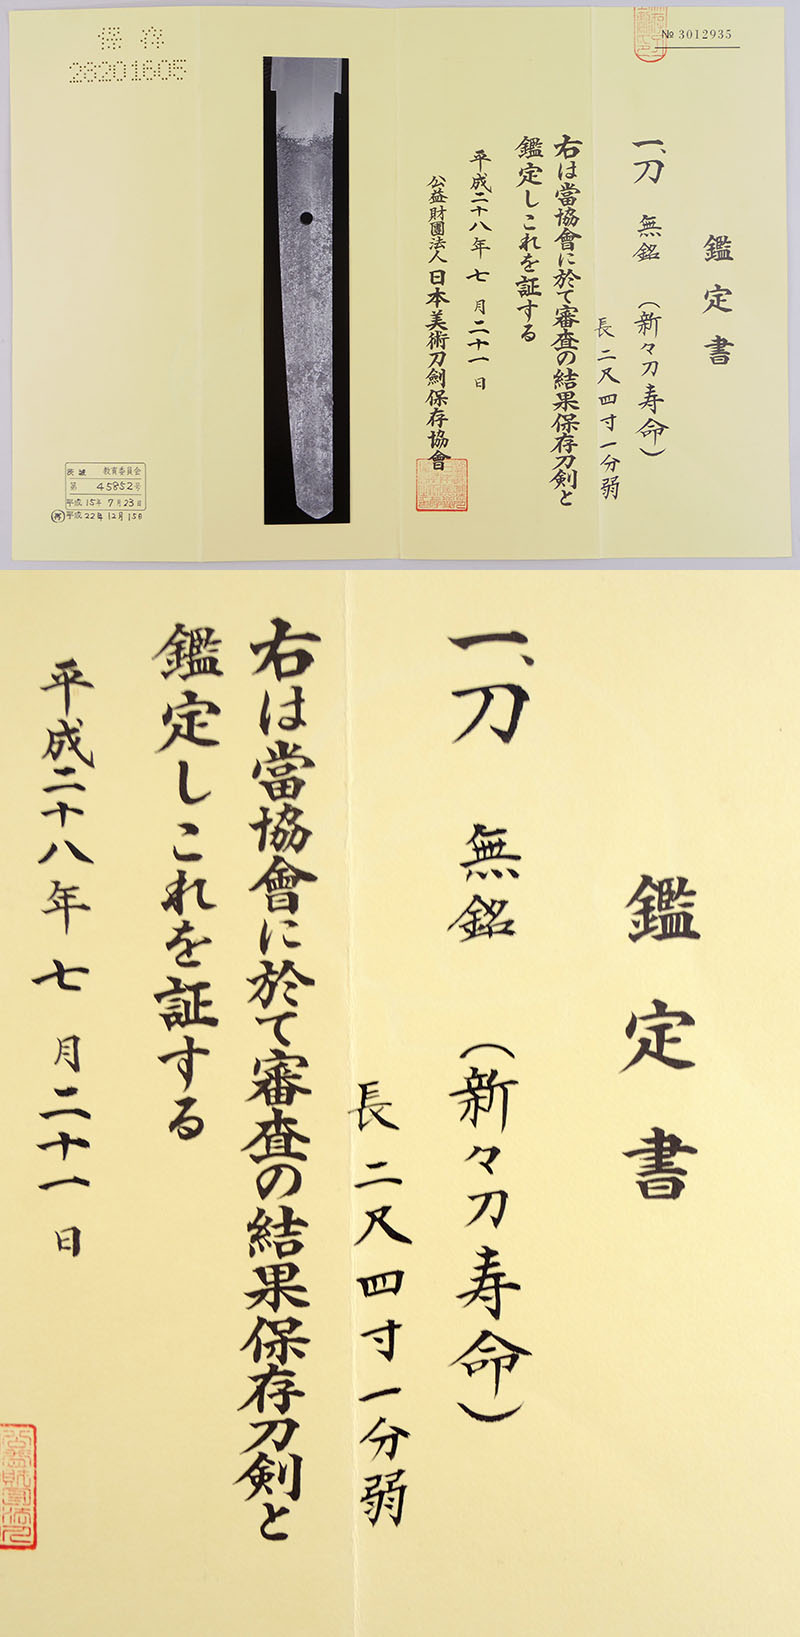 無銘(新々刀寿命) Picture of Certificate